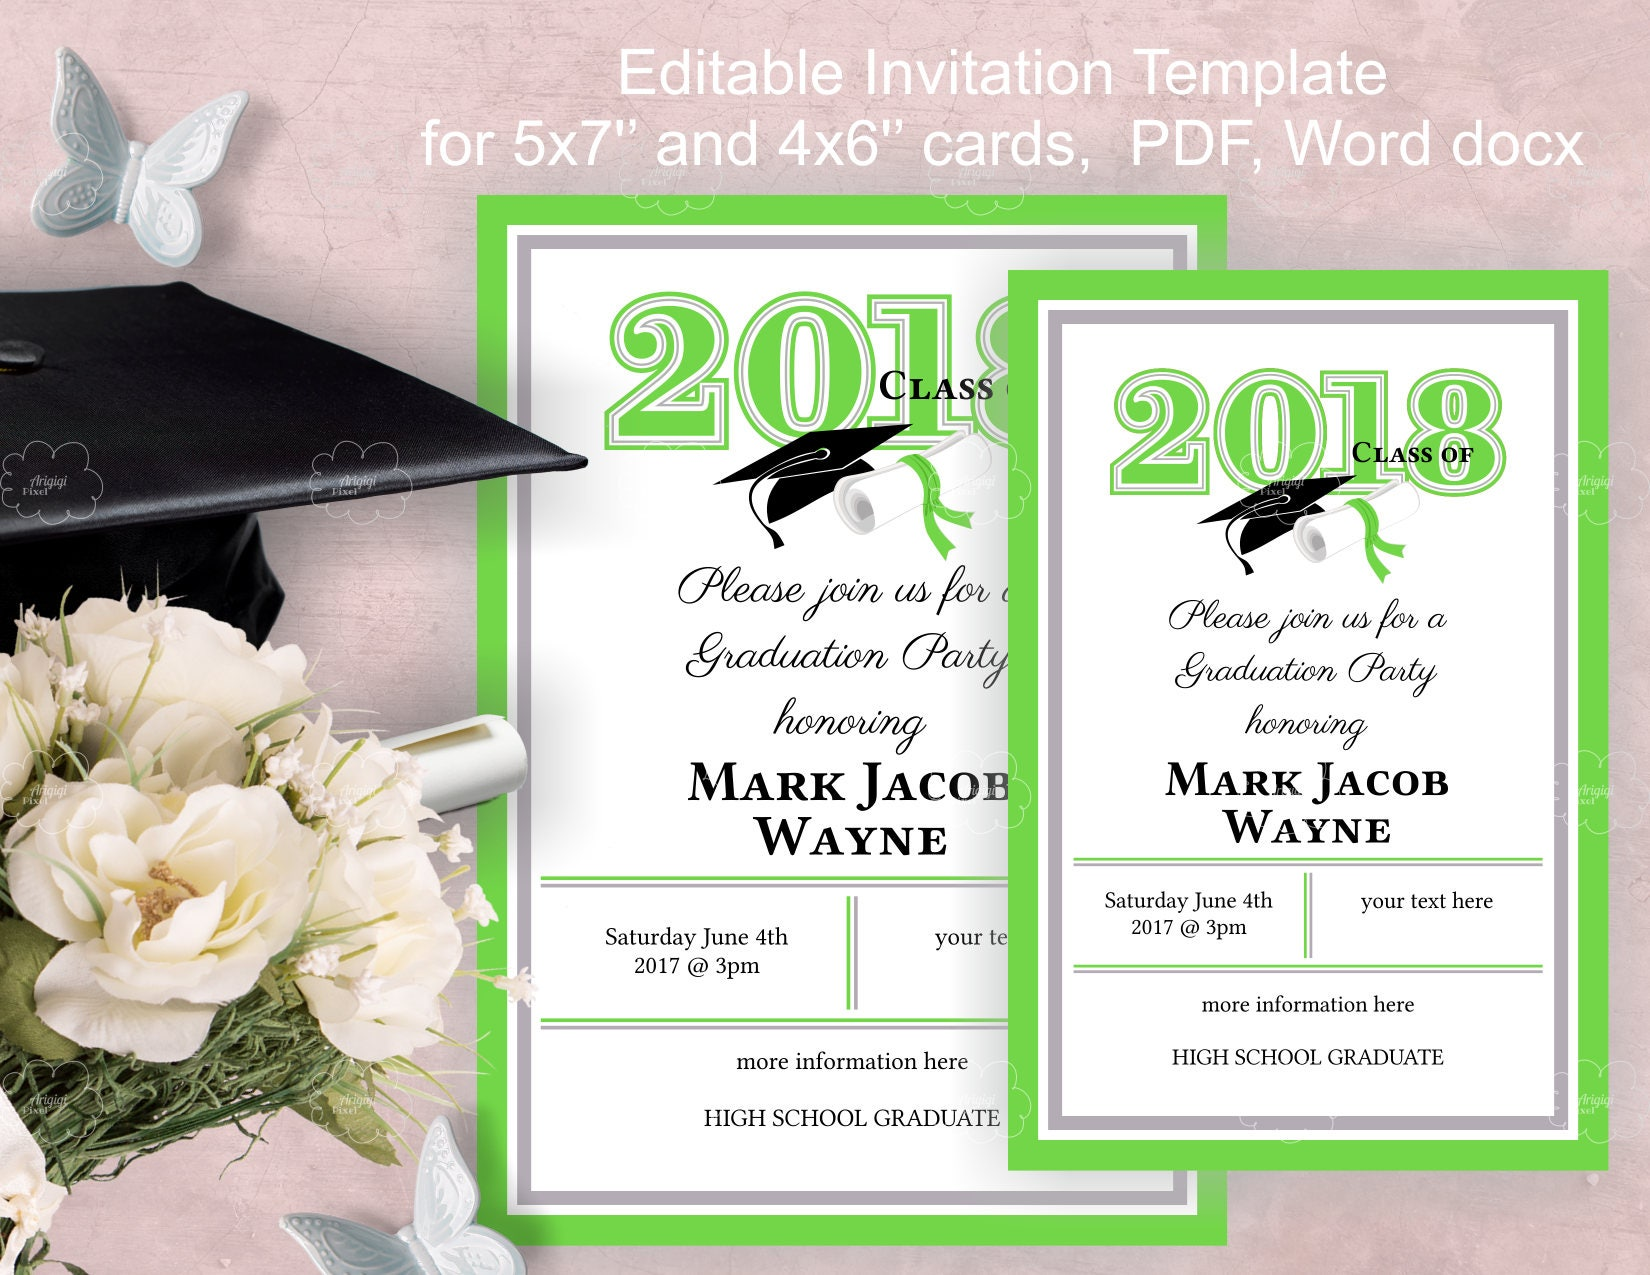 Graduation Party Invitation Template download, edit yourself ...